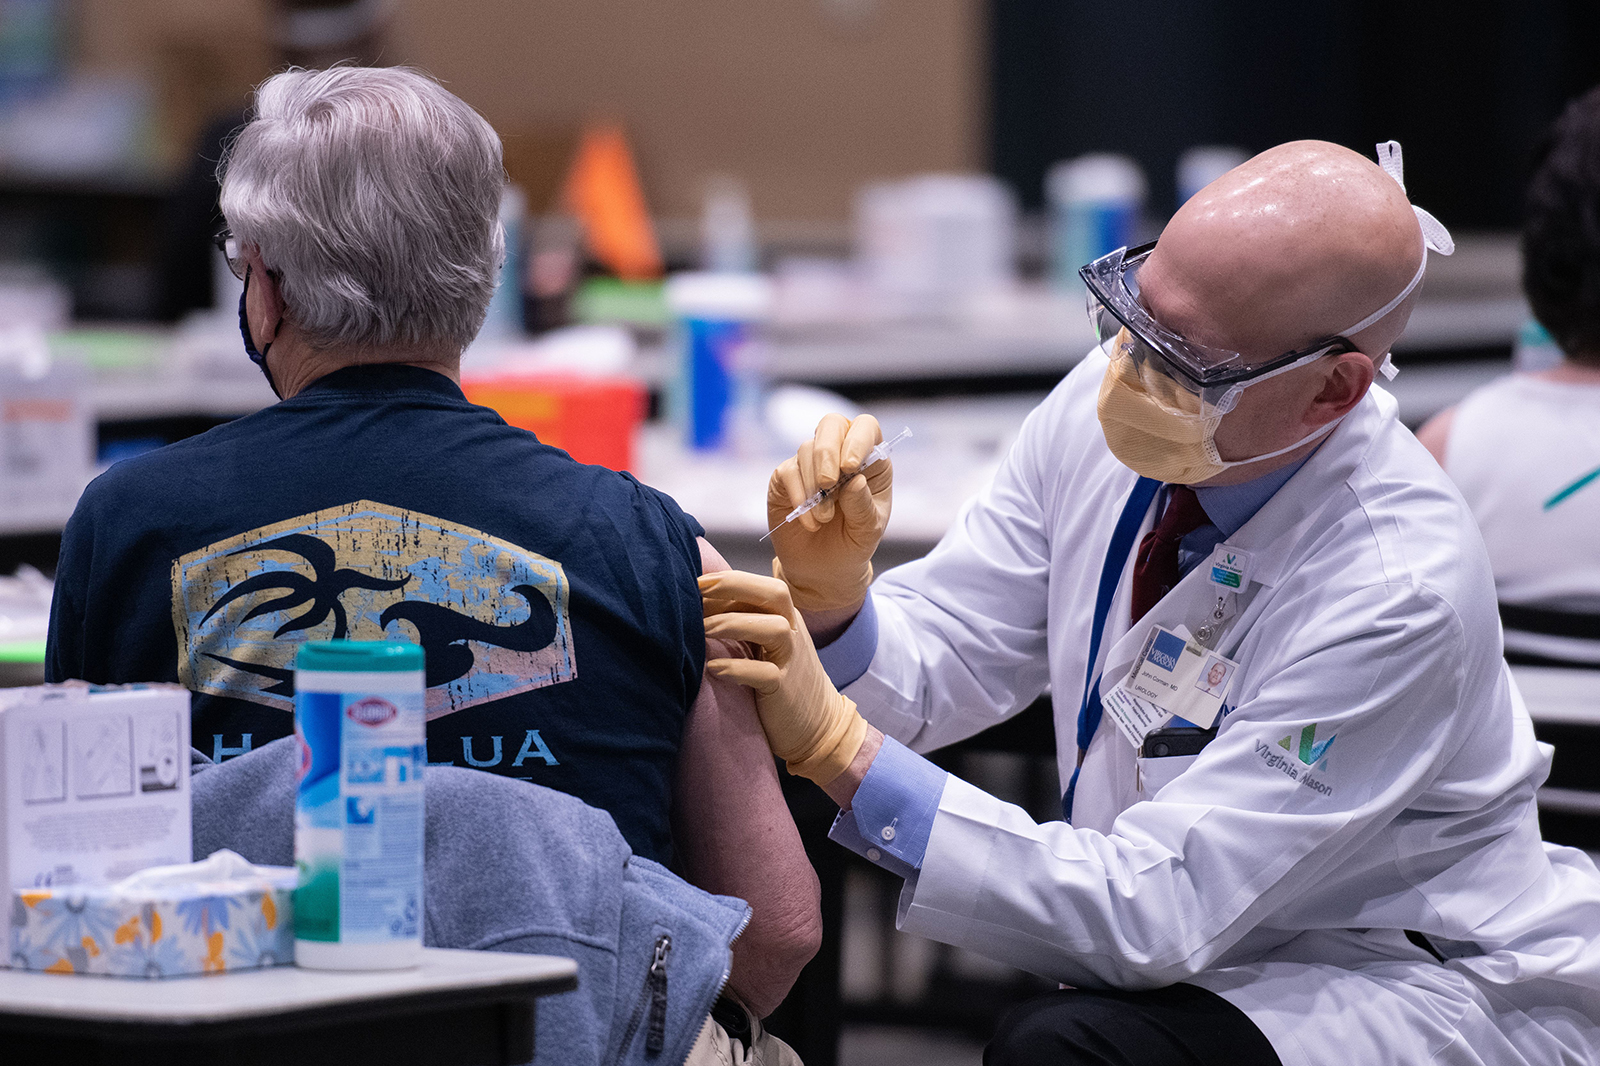 Chief clinical officer John Corman MD at Virginia Mason administers a dose of the Pfizer Covid-19 vaccine at the Amazon Meeting Center in downtown Seattle, Washington on January 24.